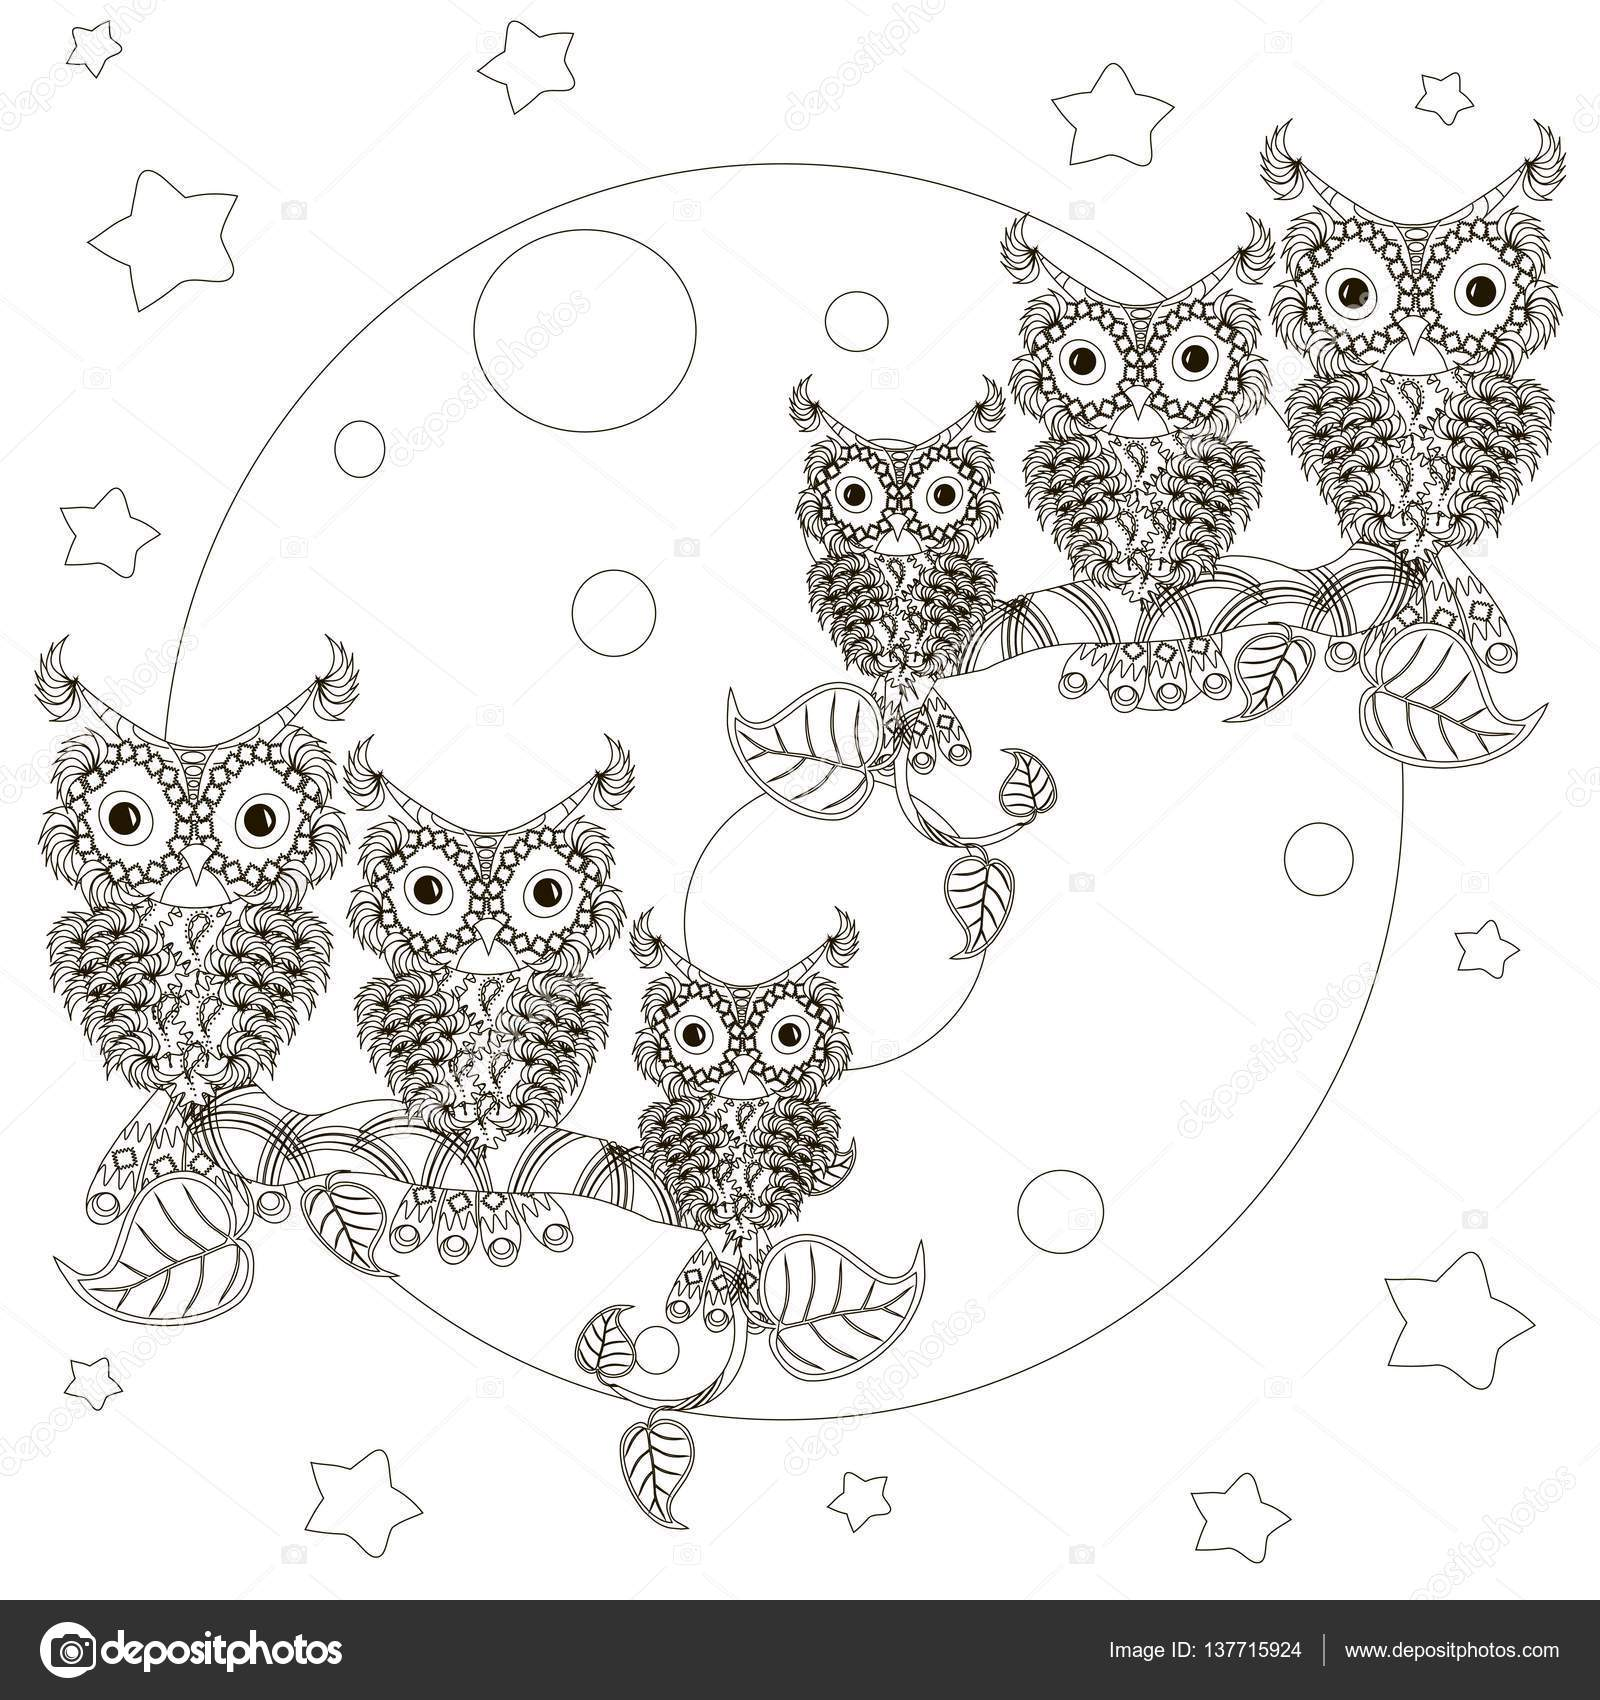 zentangle stylized black and white owls on branches full moon